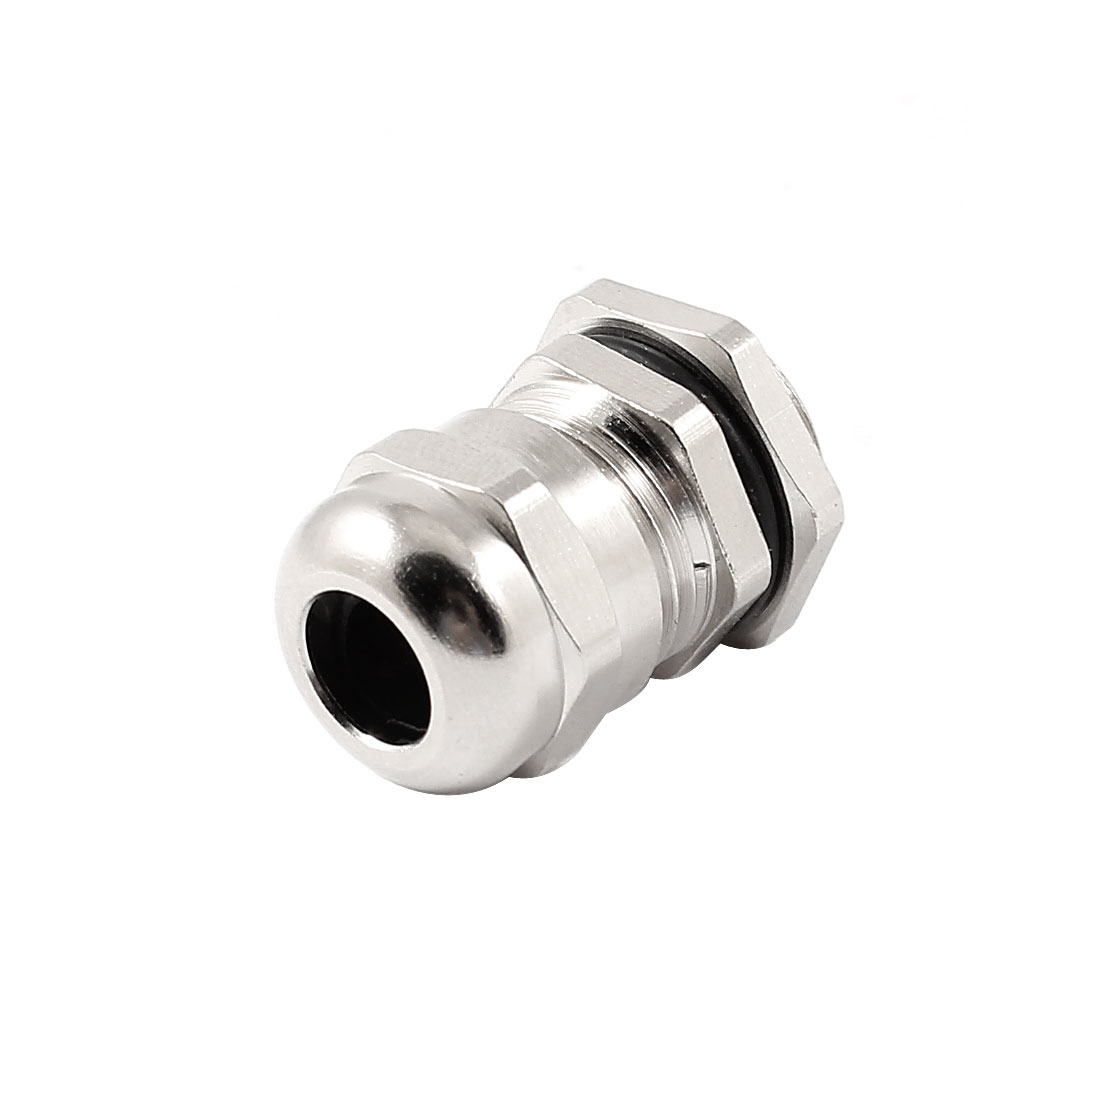 M16x1.5 4-8mm Dia Wire 16mm OD Thread Metal Waterproof Connector Fastener Cable Gland